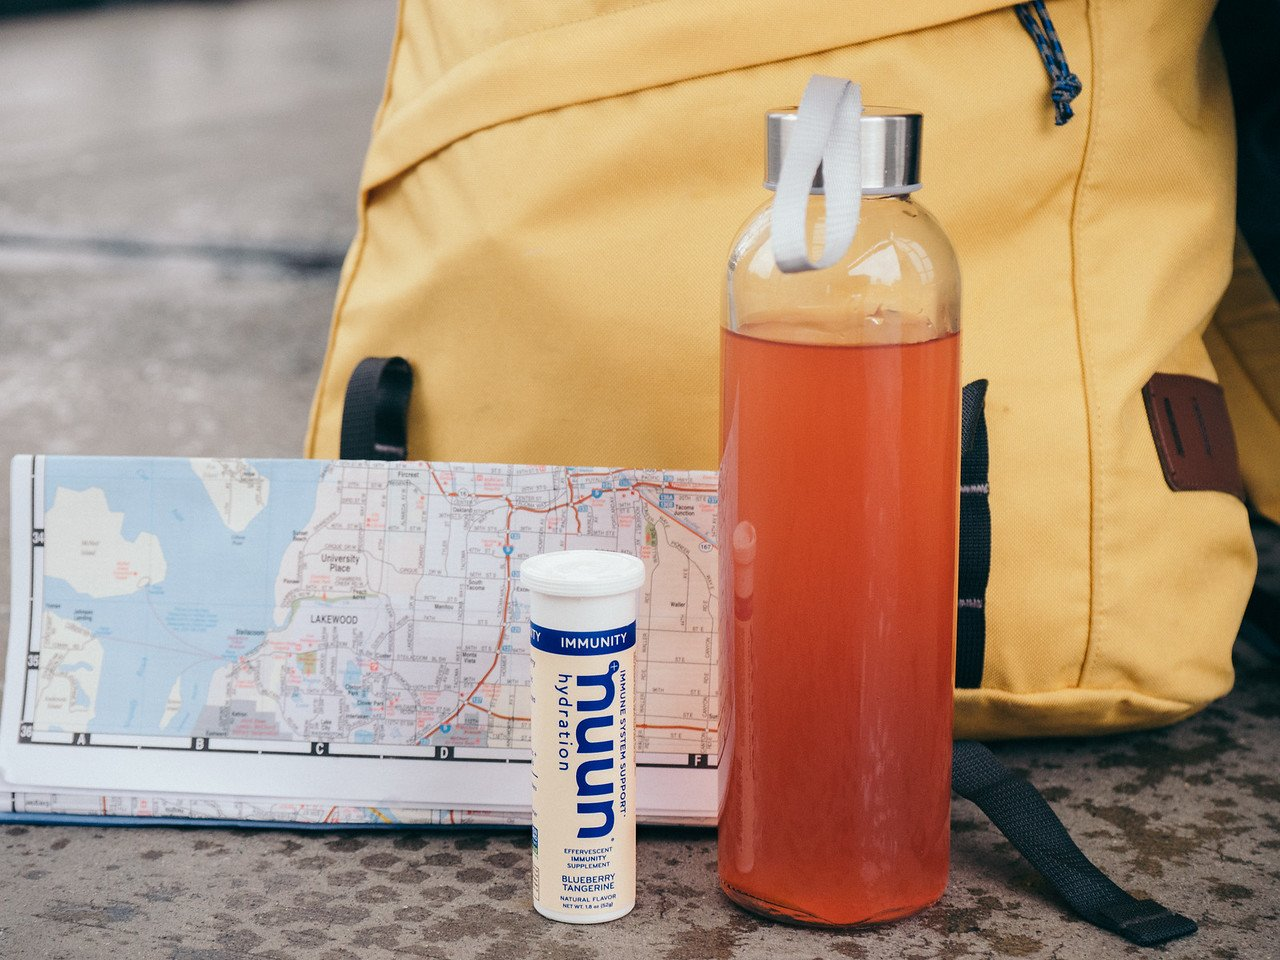 Nuun Immunity: Zinc, Turmeric, Elderberry, Ginger, Echinacea, and Electrolytes for an Anti-Inflammatory and Antioxidant Boost in Immune Support and Hydration, Orange Citrus 8-Pack by Nuun (Image #8)